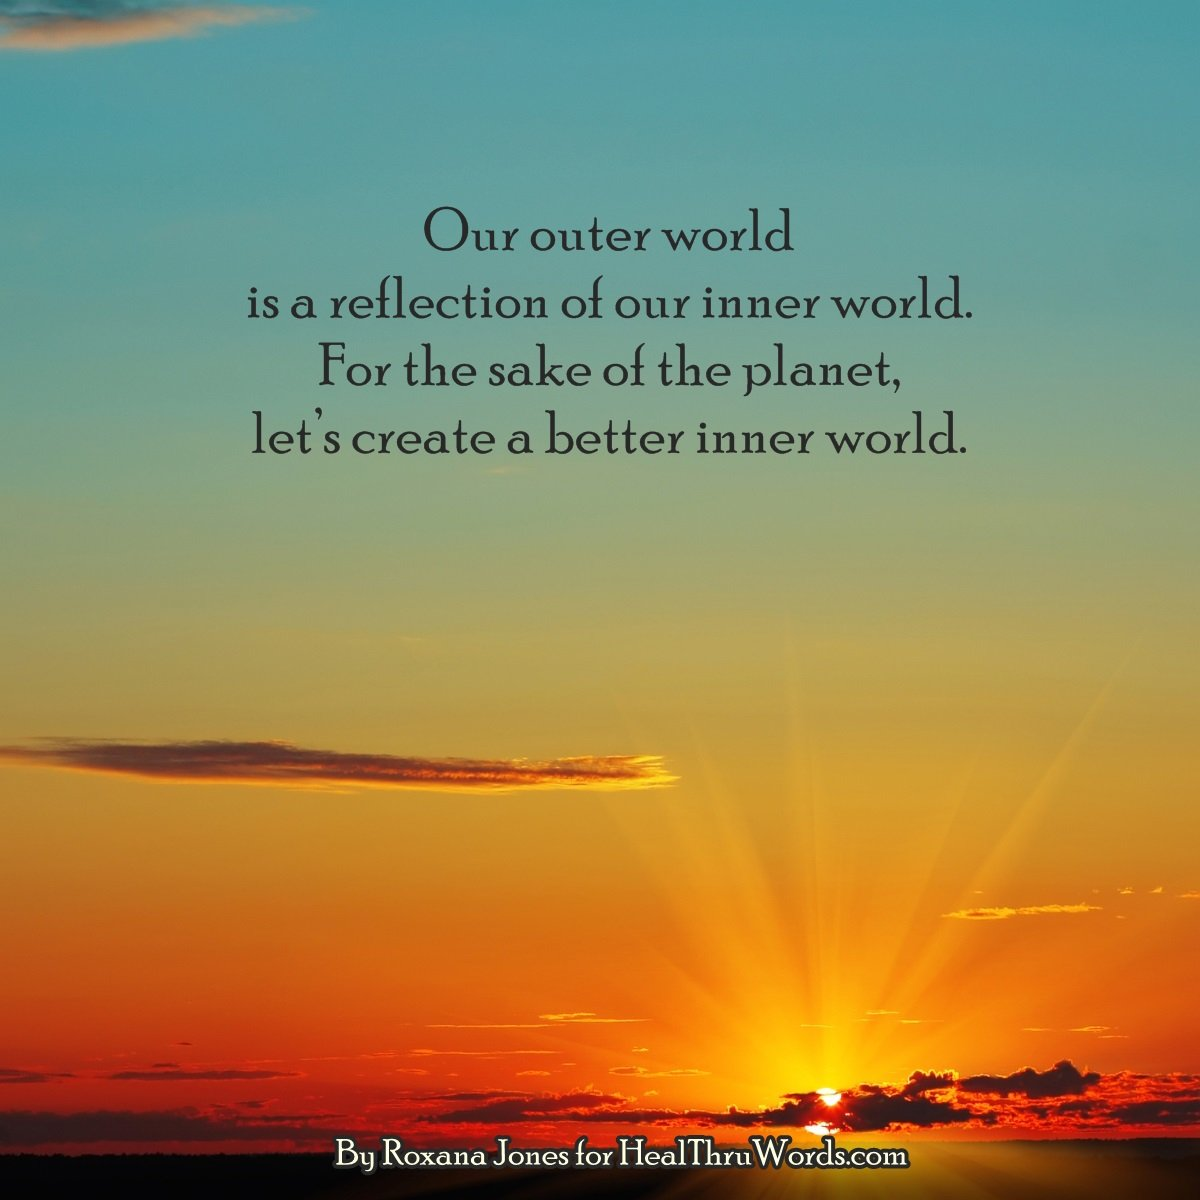 Inspirational Image: Creating the Best World